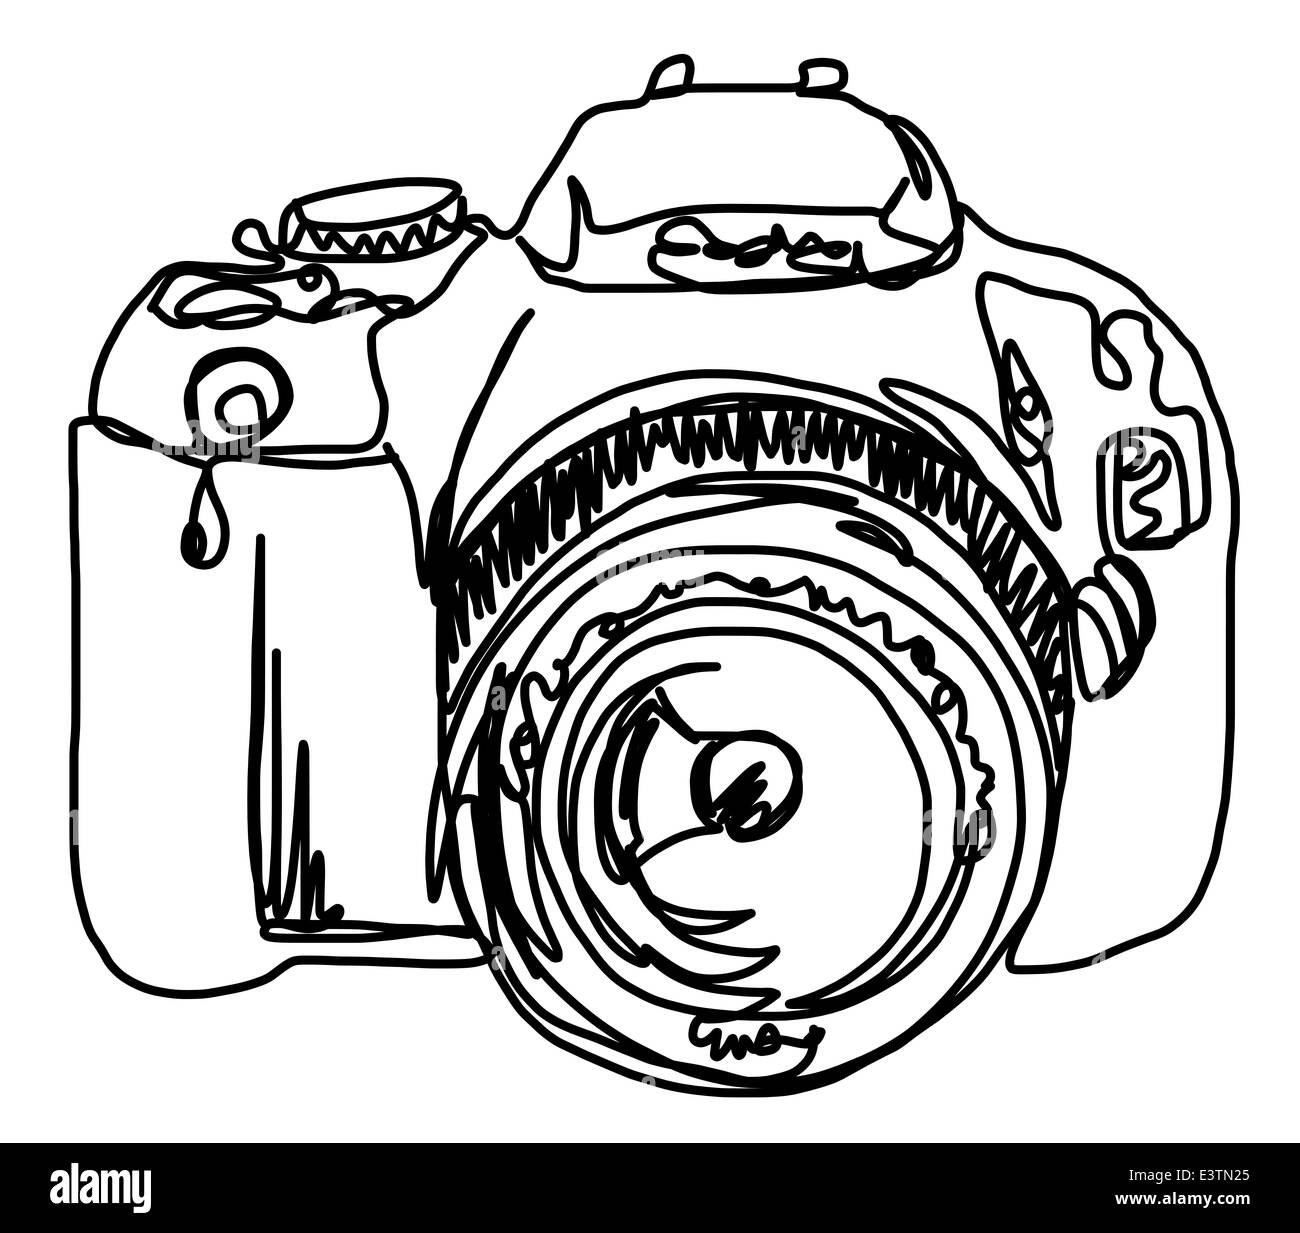 Drawing Lines In Photo : Continuous line drawing of a camera stock photo royalty